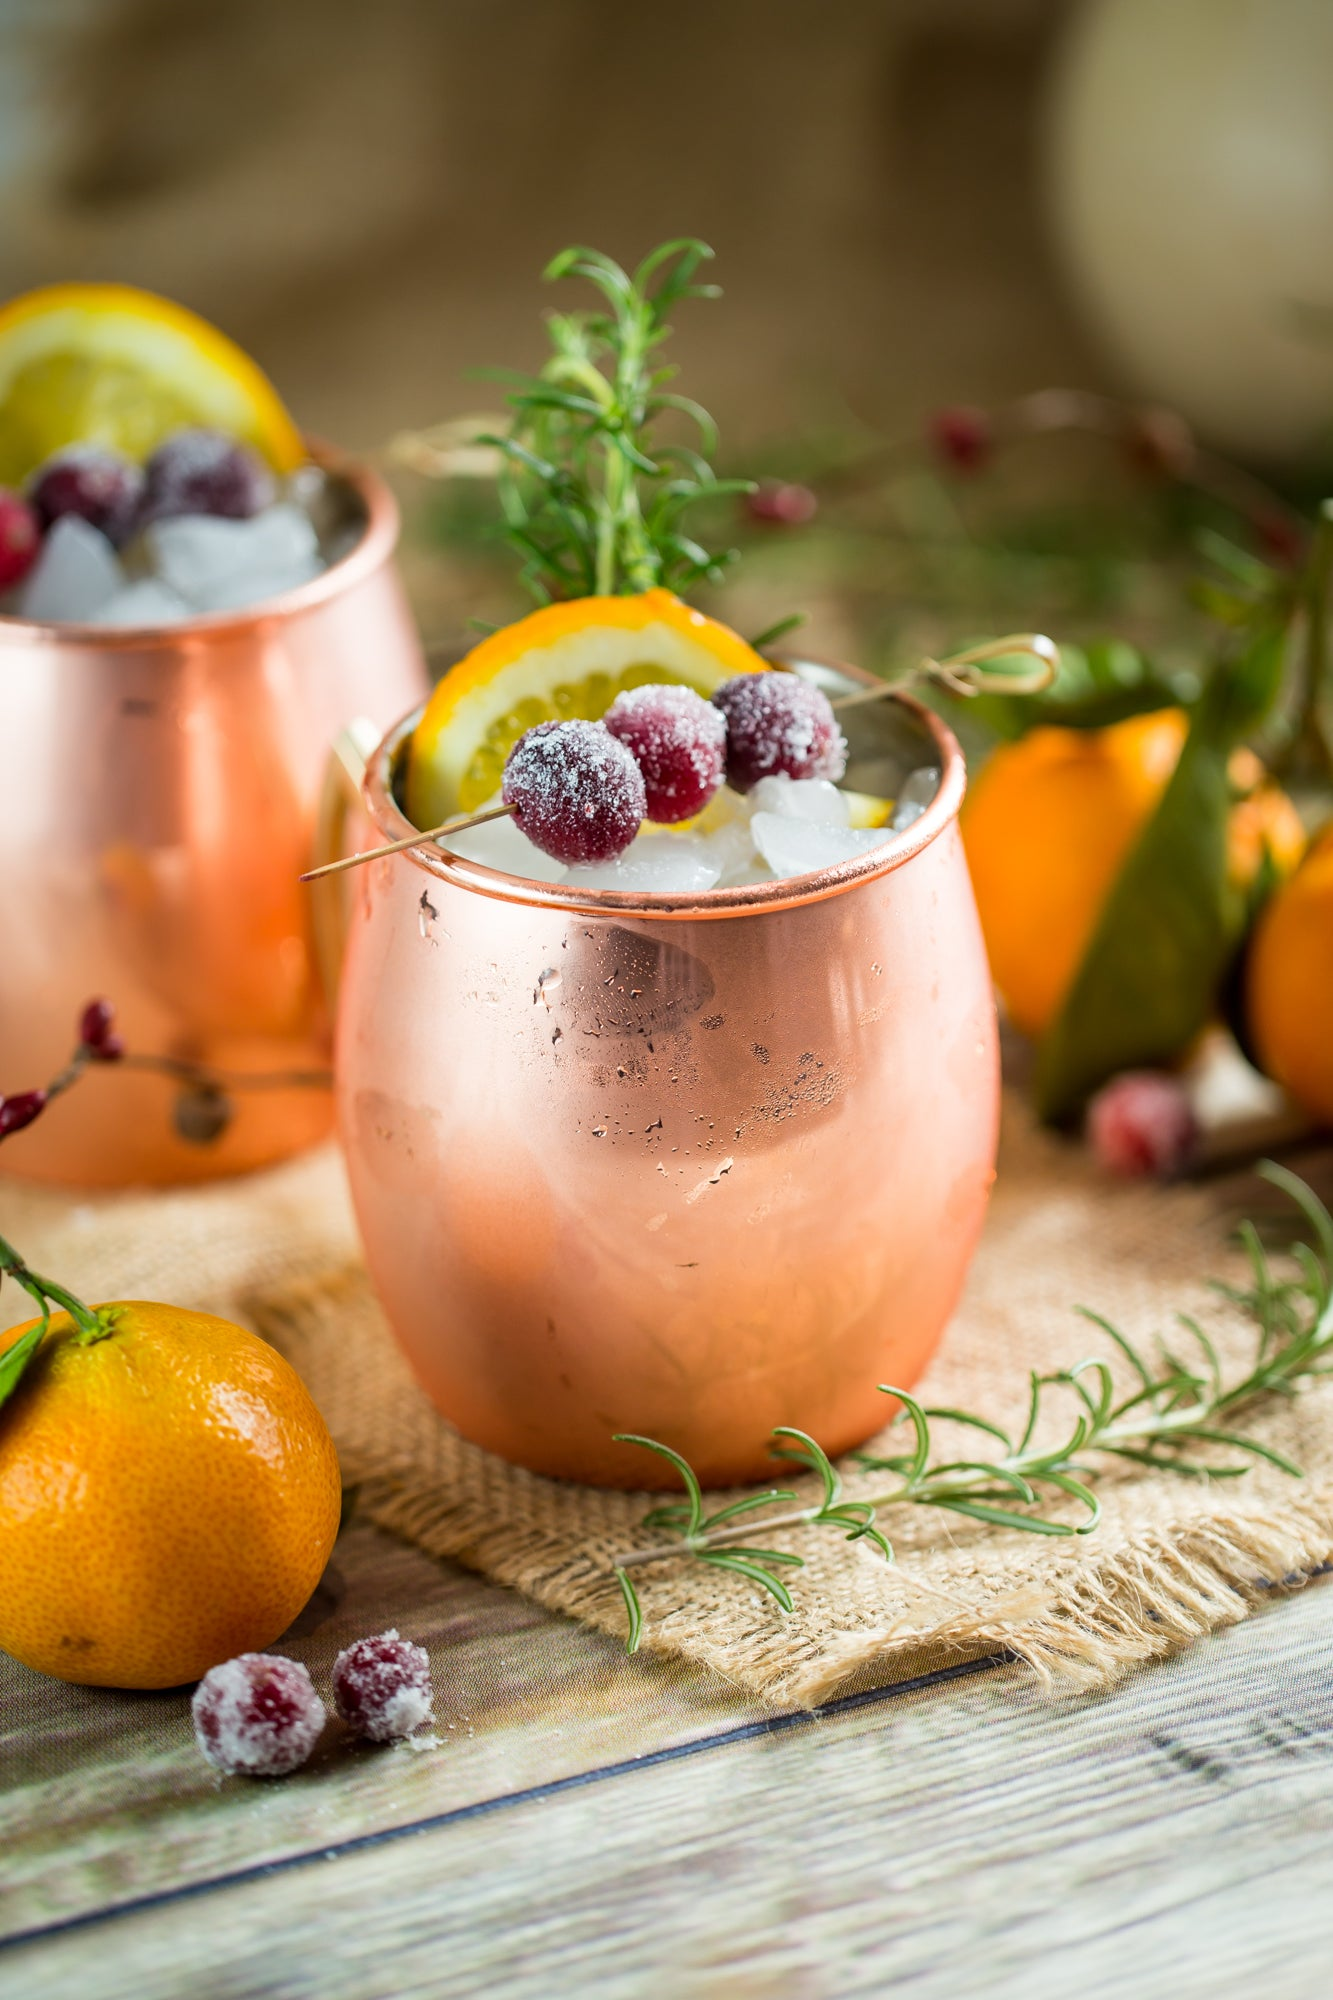 Do you still need to get into the holiday mood? How about adding a holly jolly cocktail to it? Pickett's Press has 11 yummy and simple festive drinks for the holidays.